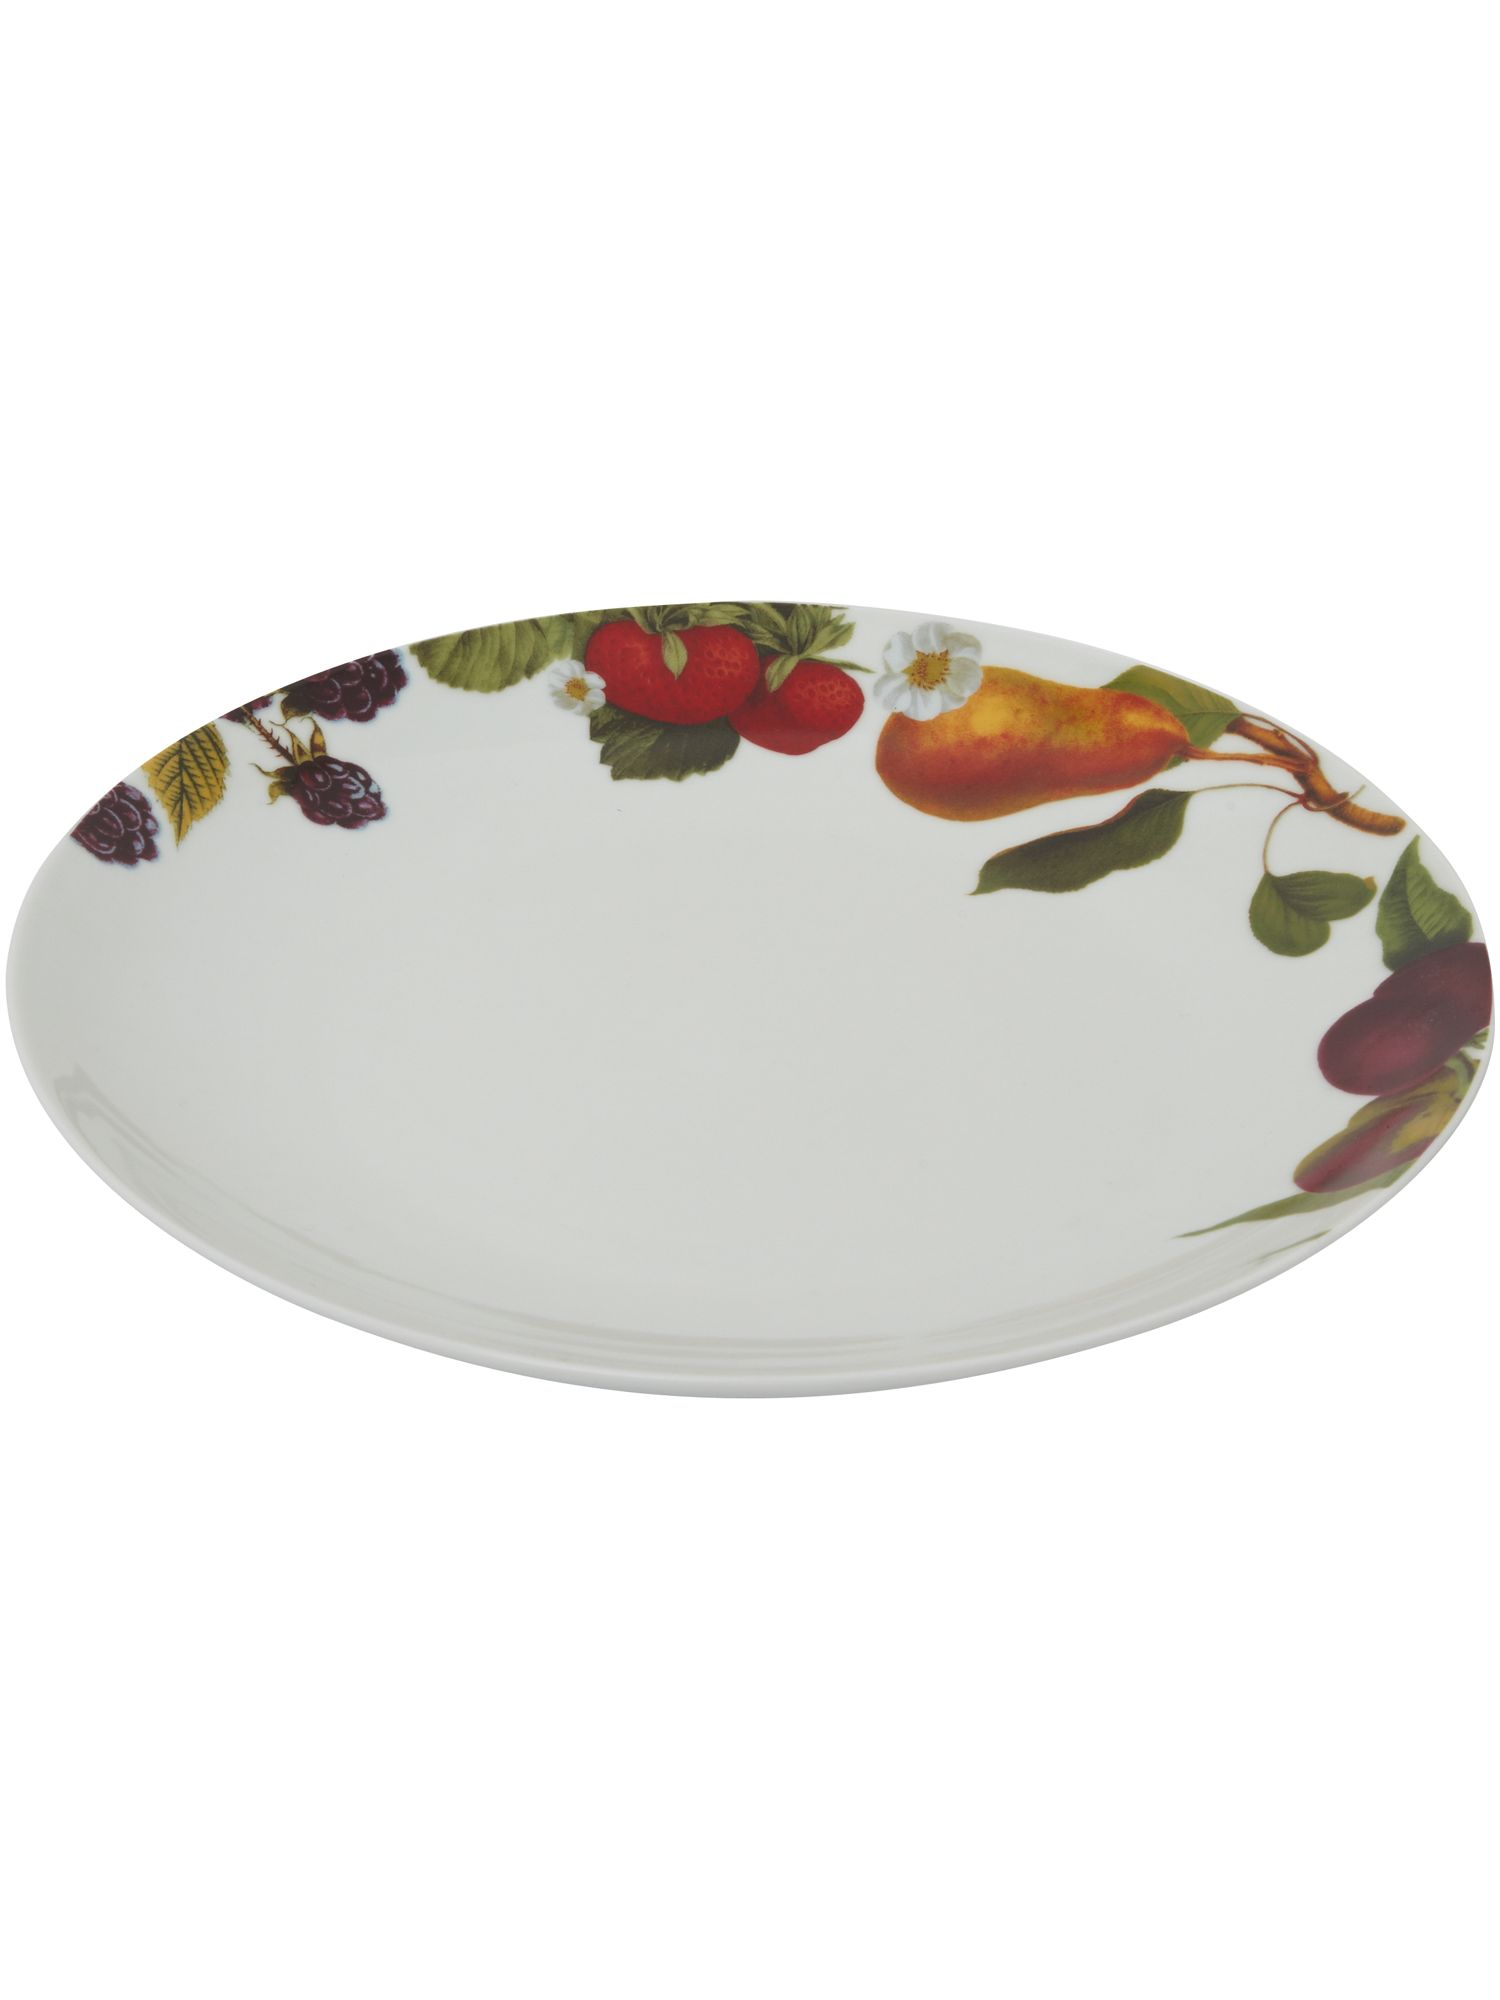 Botanical fruits dinner plate